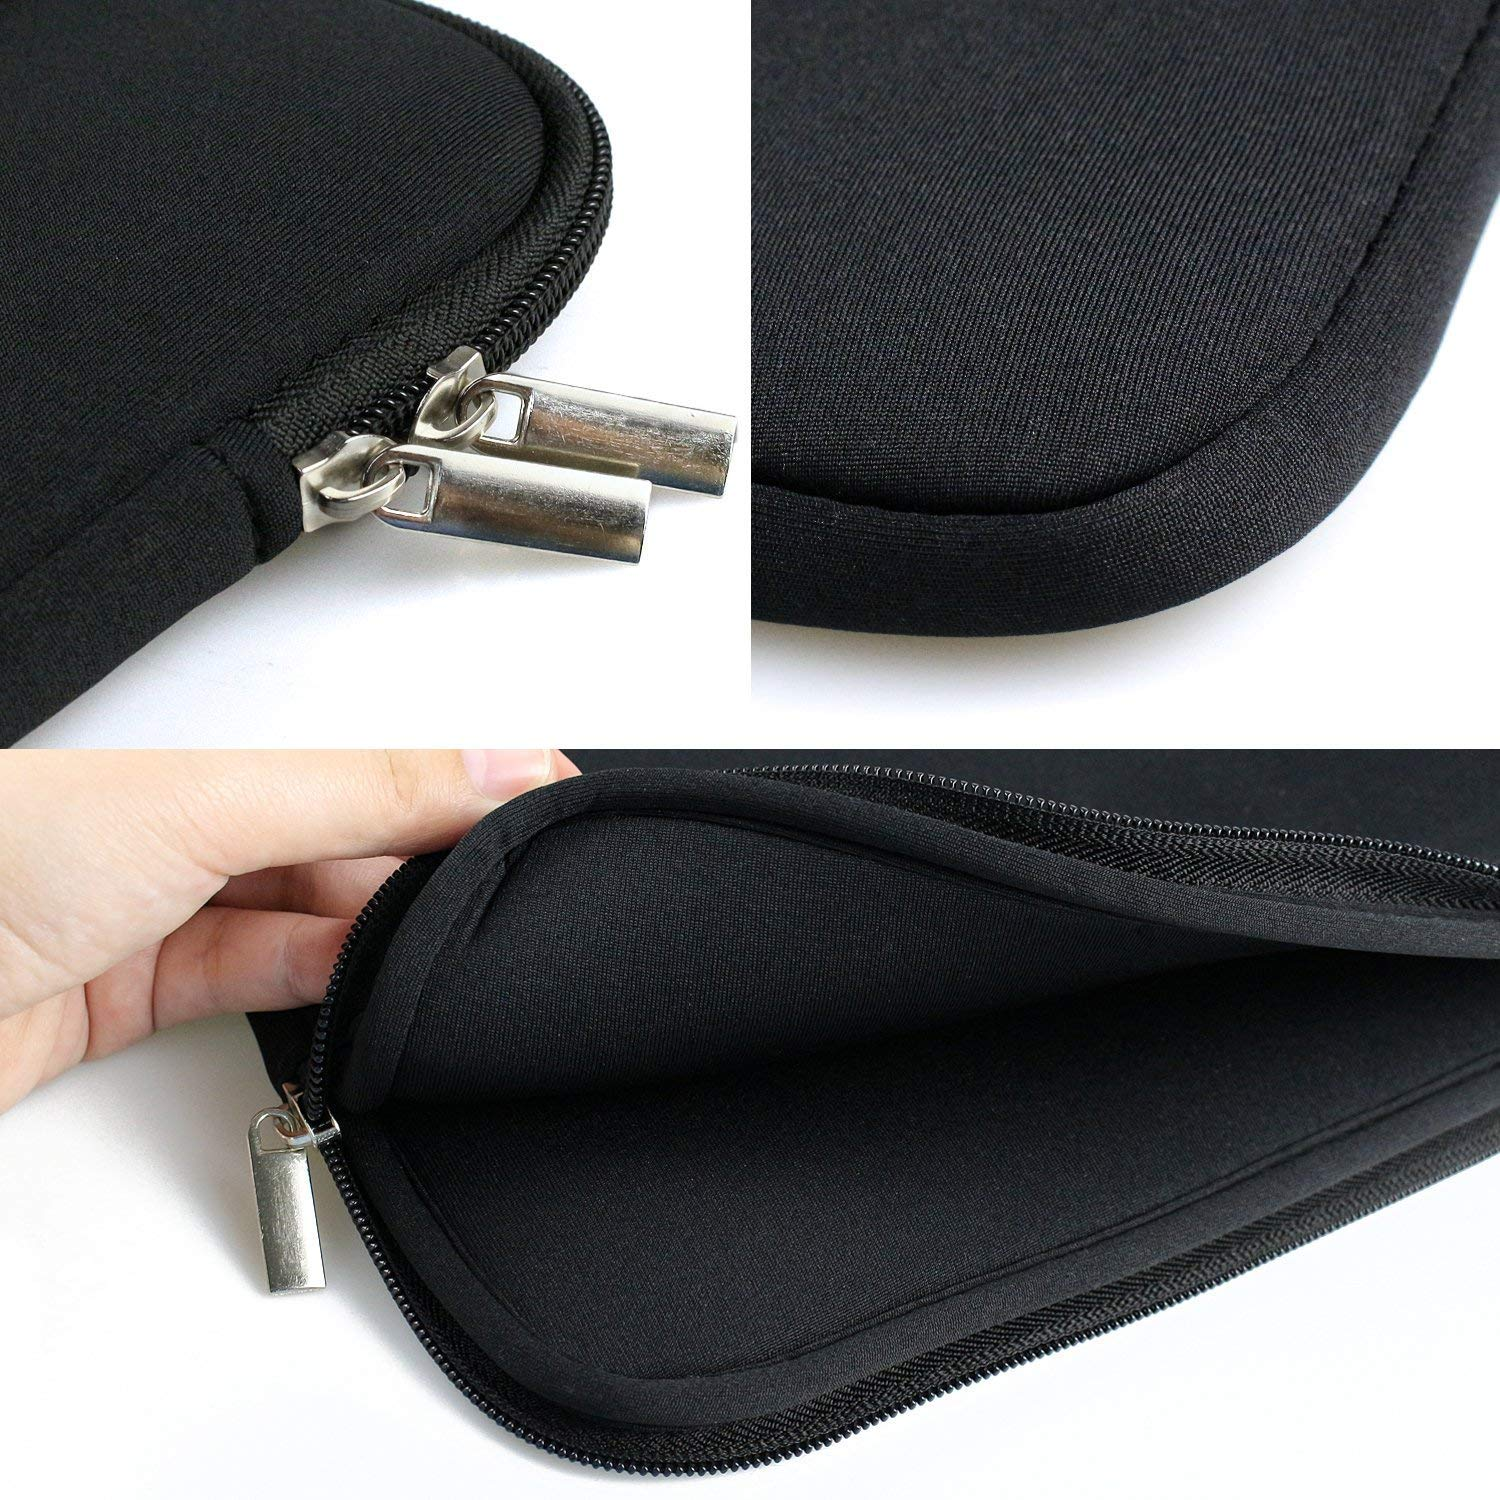 Sammid 15.6 inch MacBook Case,Protective Notebook Carrying Case Cover for Most 15.6 inch Laptop, Notebook, MacBook etc - Black